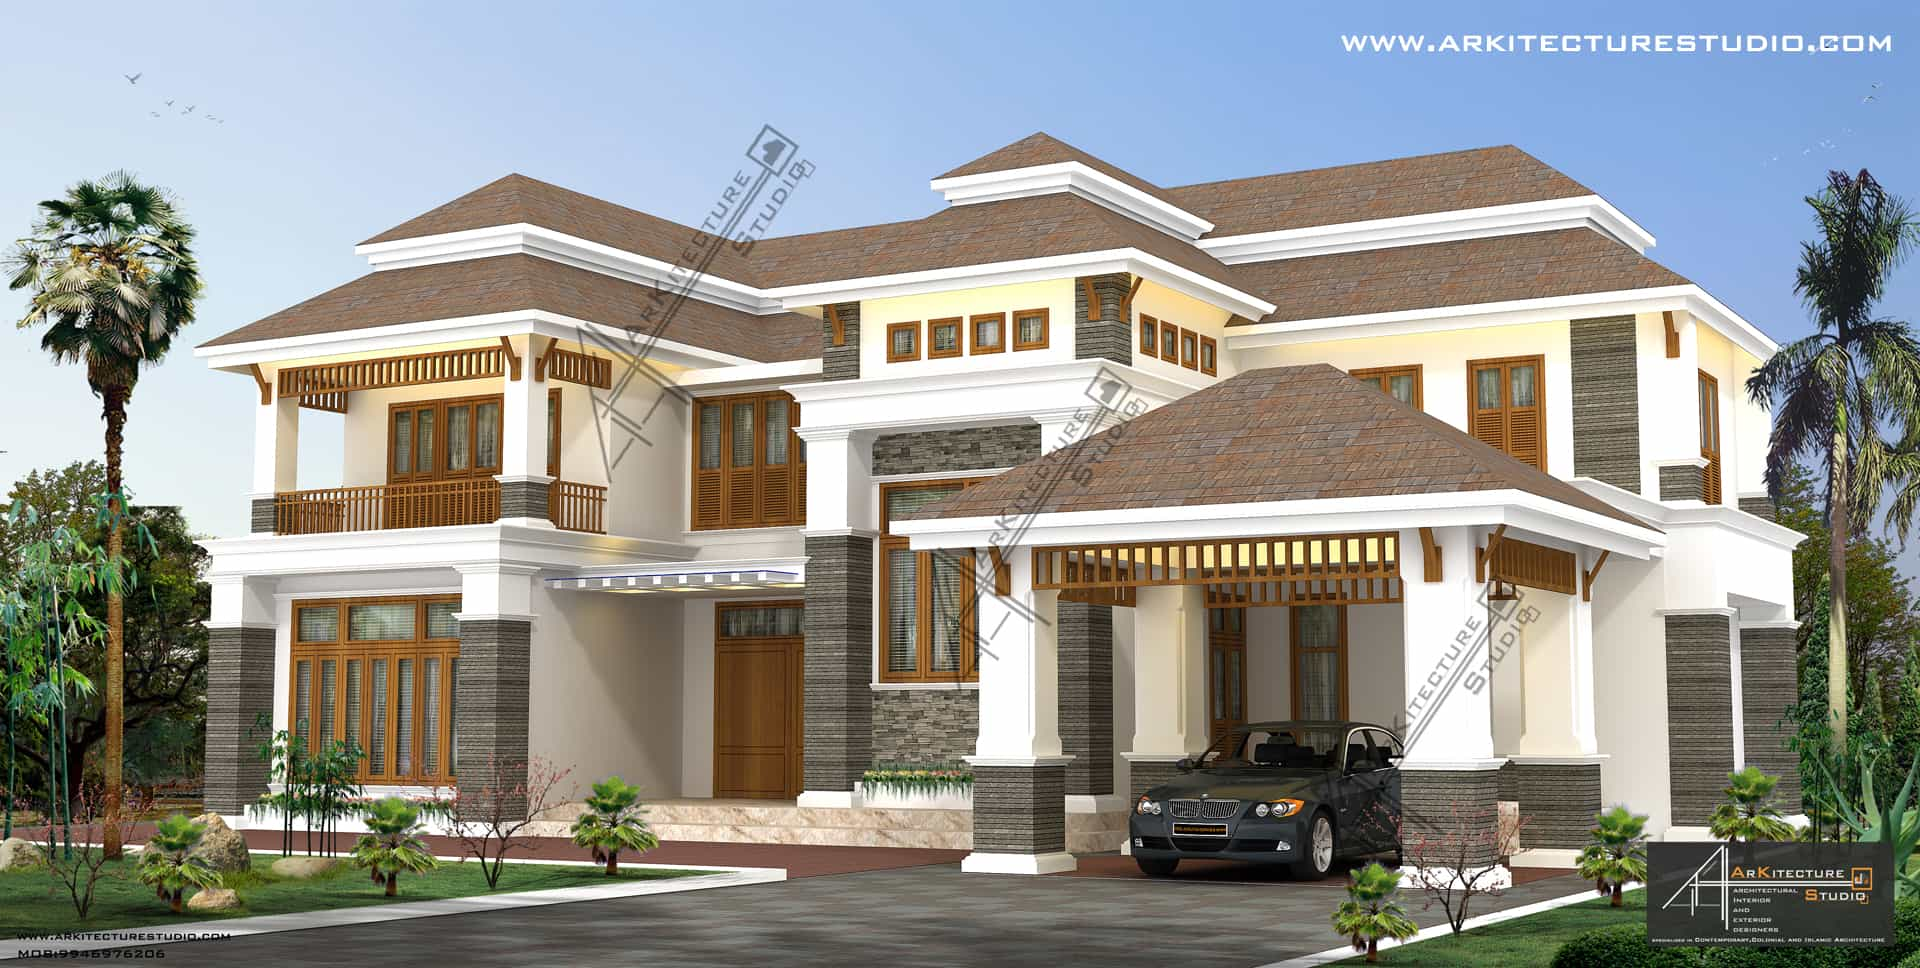 Colonial style house designs in kerala at 3500 sqft 5000 for 3500 square foot house